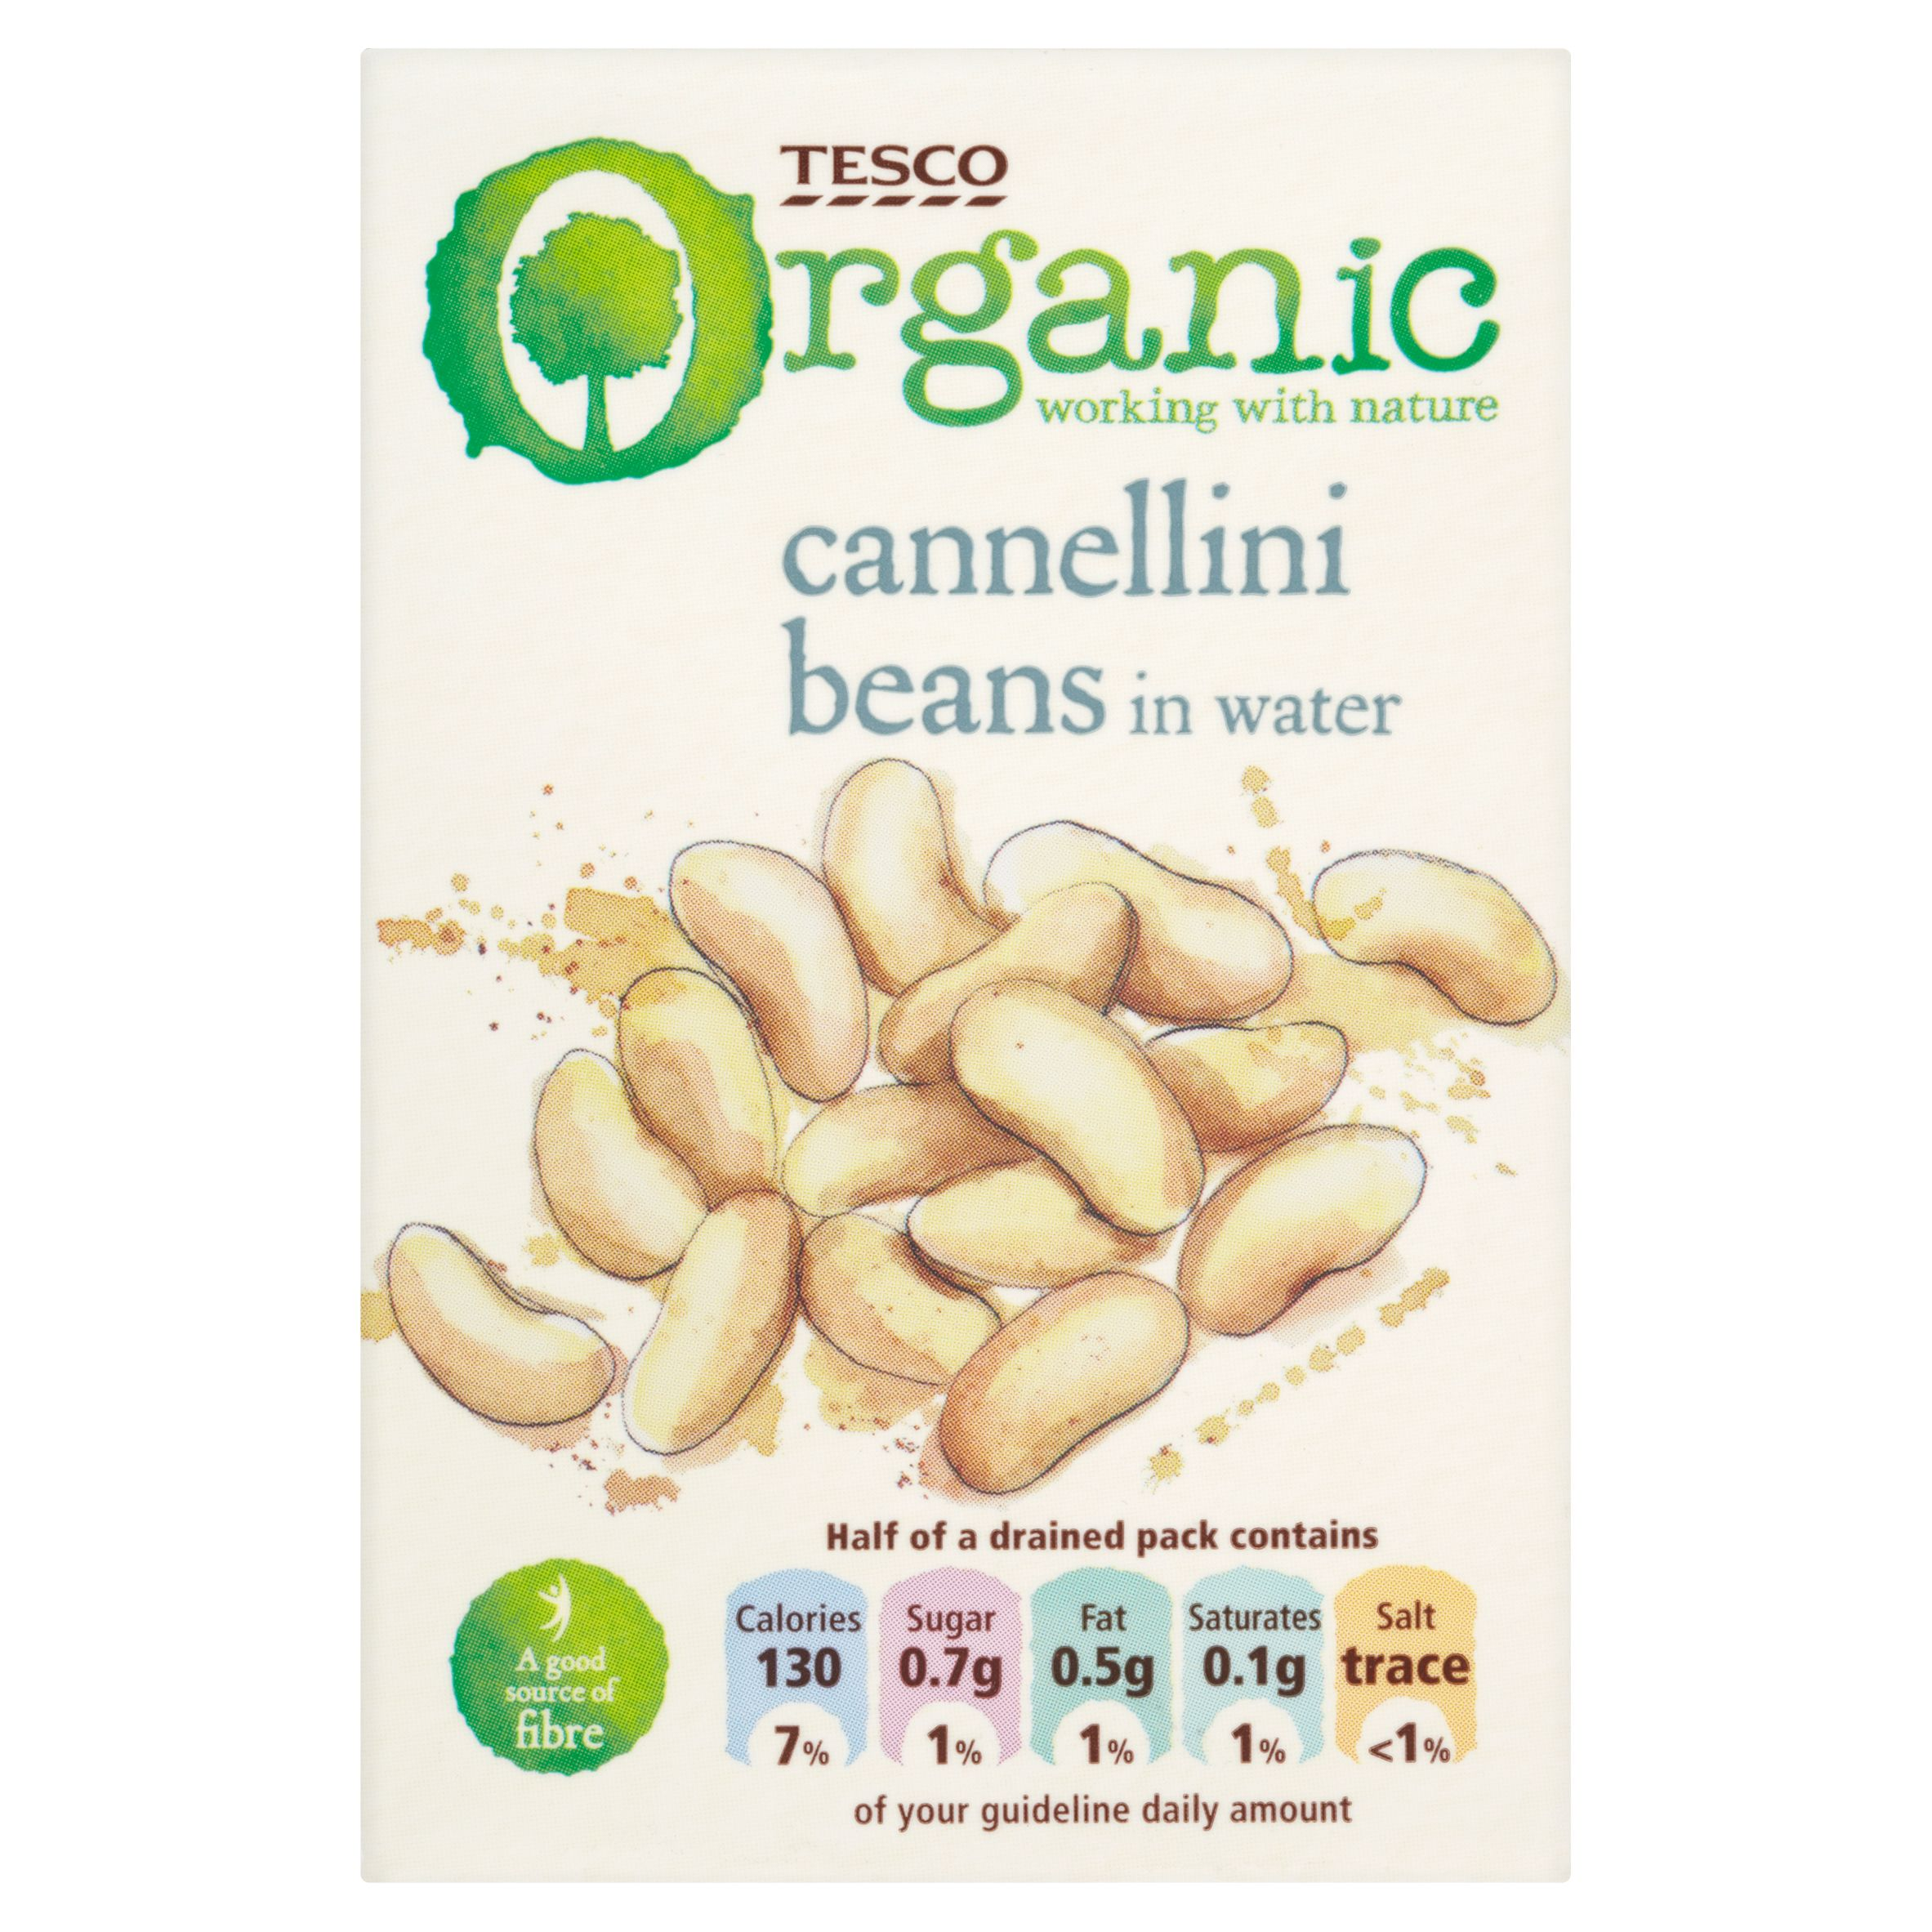 #TescoOrganic! Cannellini beans in water.